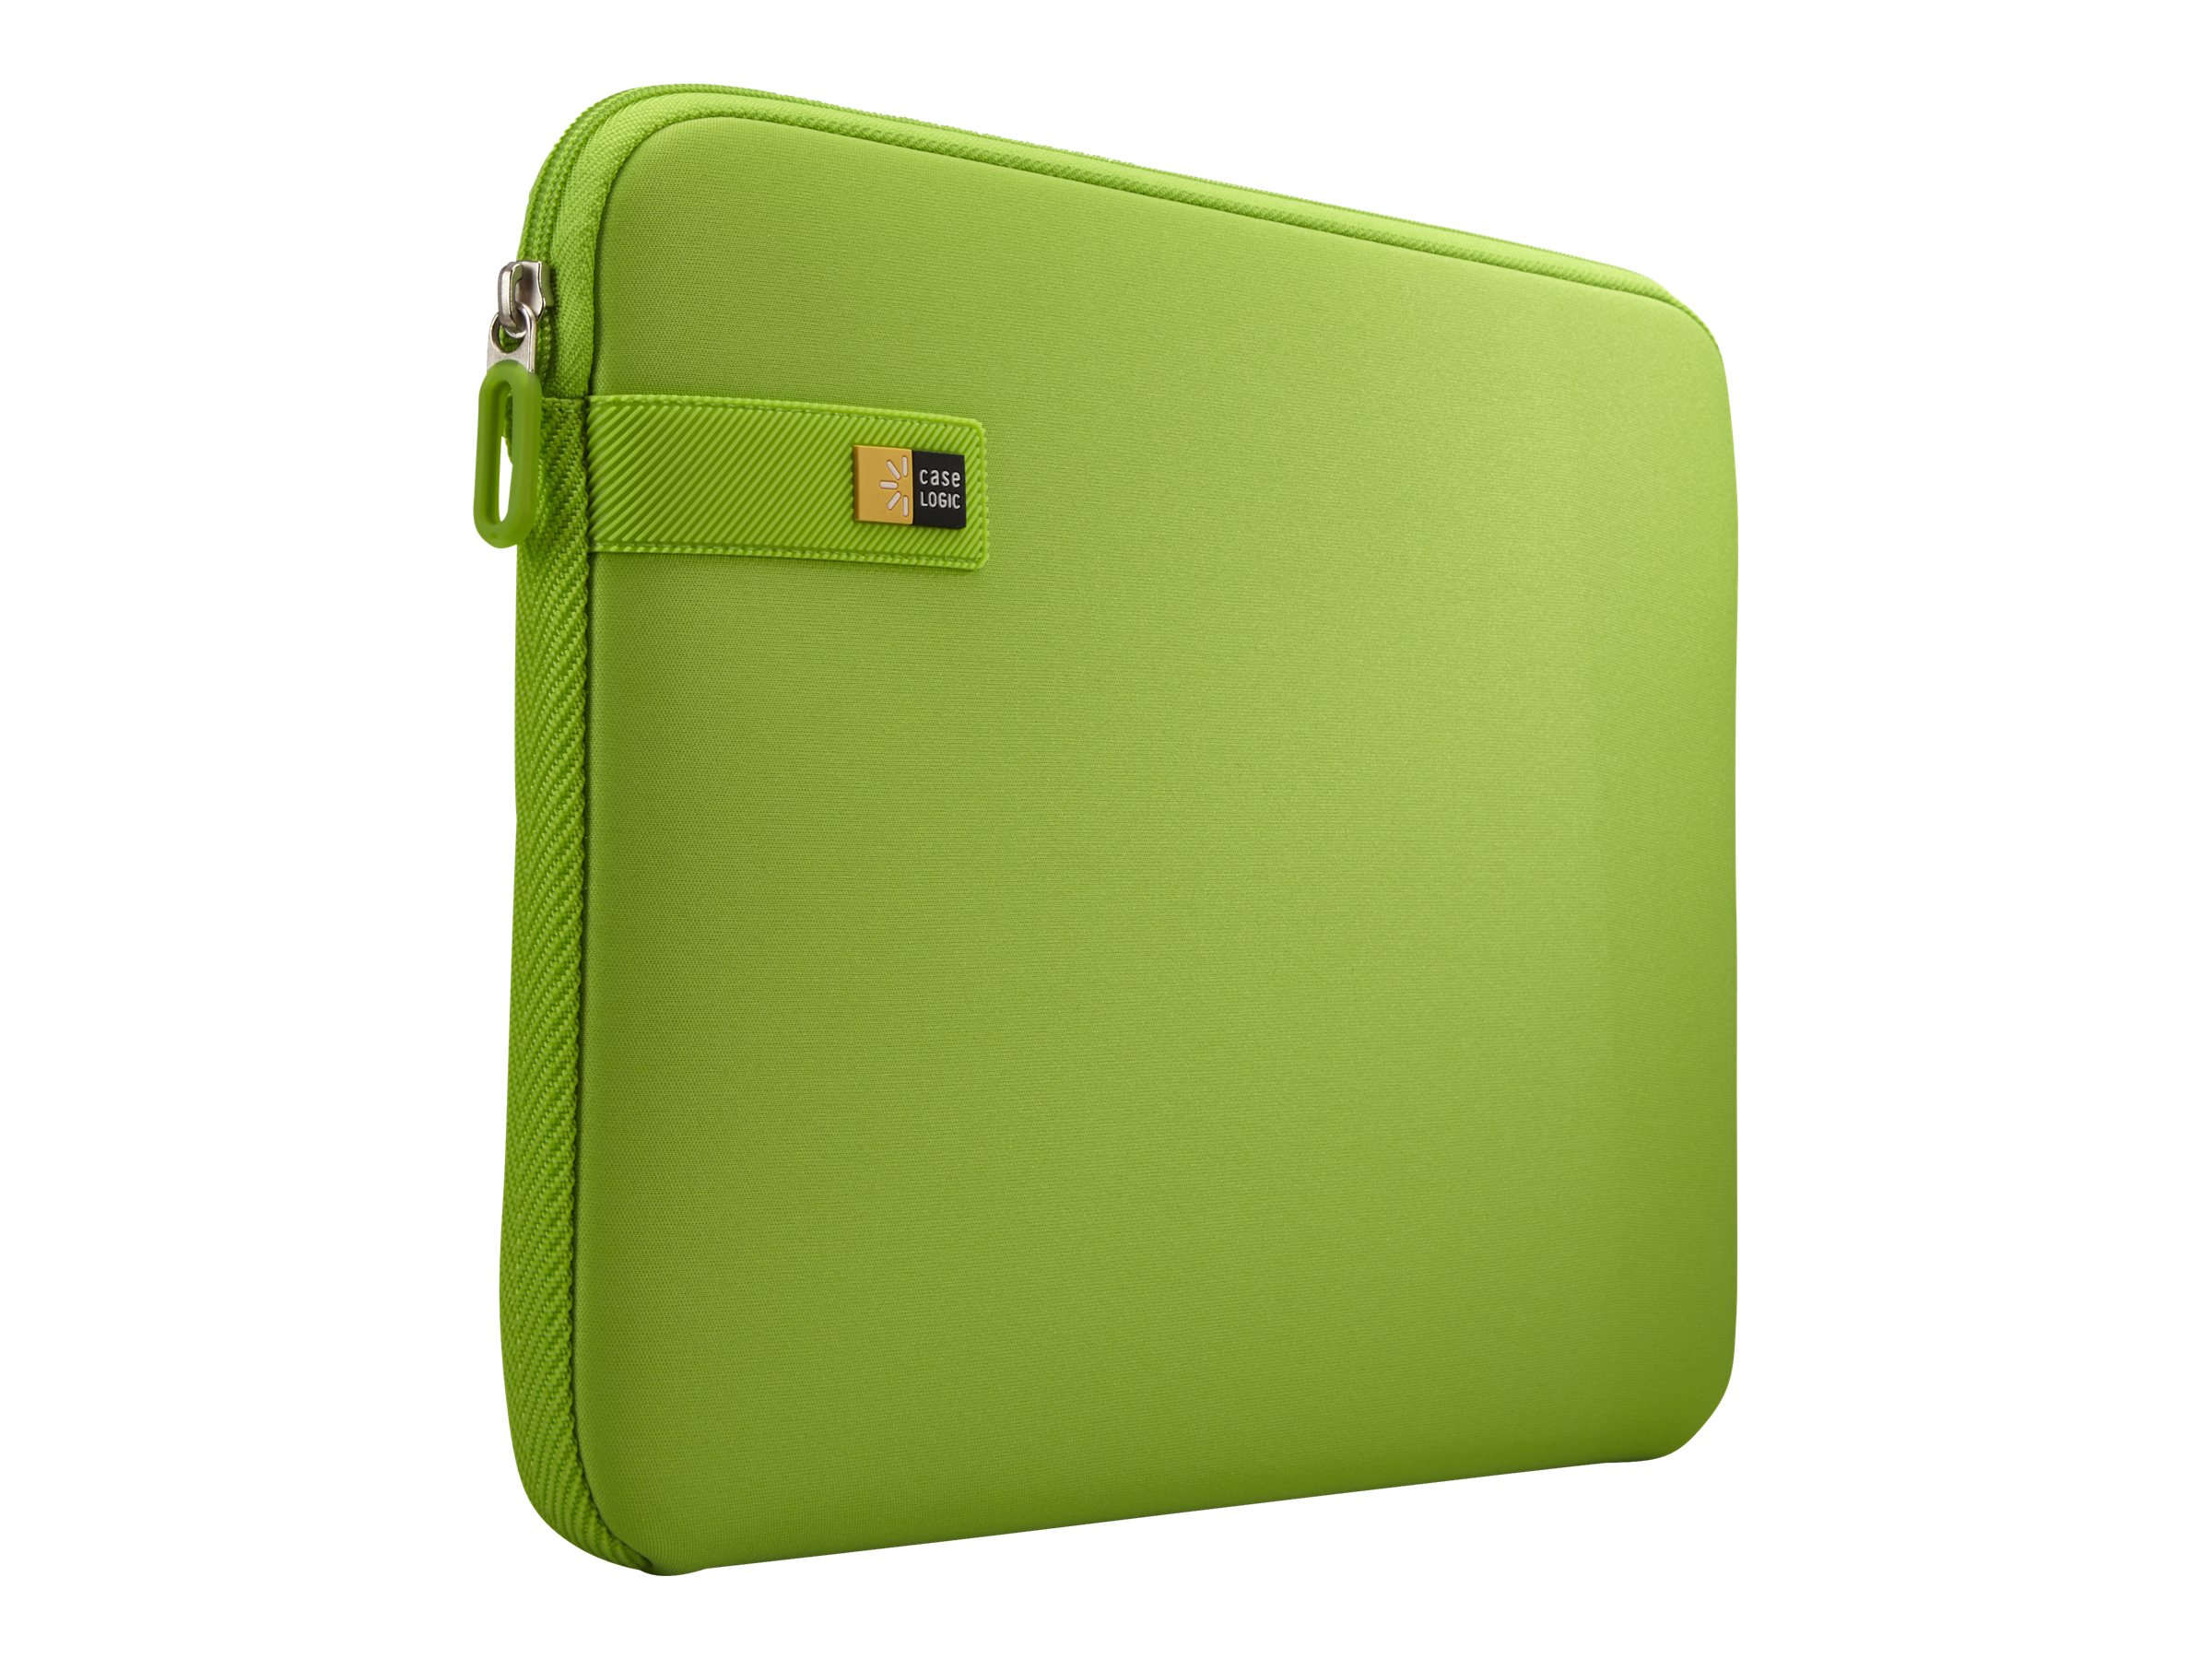 Case Logic 13.3 Laptop Sleeve, Lime, LAPS113LIME, 22612569, Carrying Cases - Notebook